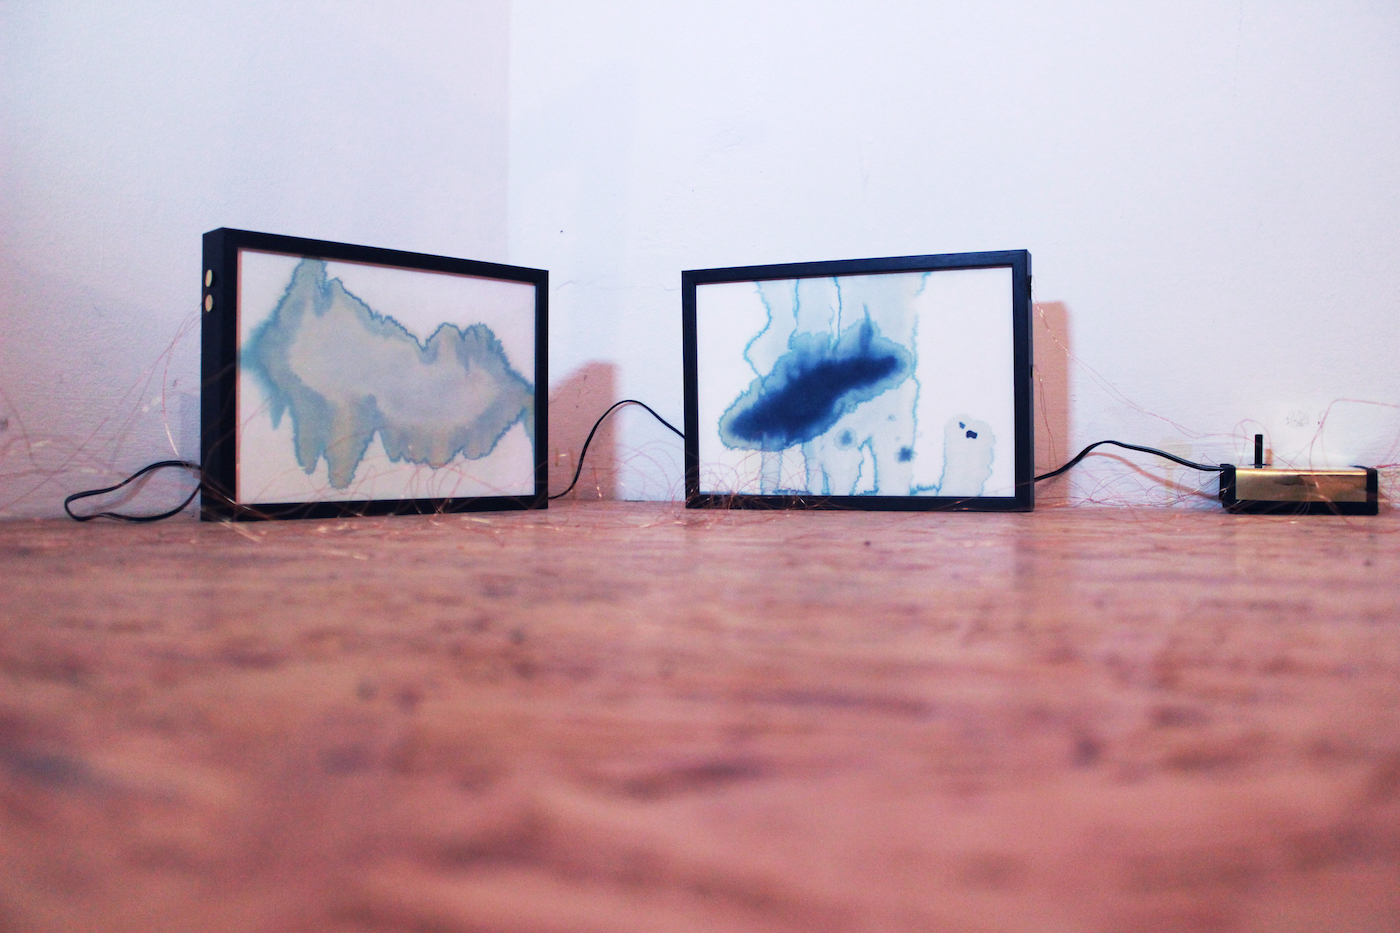 Juliana Herrero, Sonoides 1+2, 2016 (27,3 x 18,8 cm x 4 cm) each. Mixed media sounding sculpture: microsound and watercolor blue print technique as synesthesia, copper wire, piezo's, electronic heart, sound on playback. View of diptych sounding paintings installed.